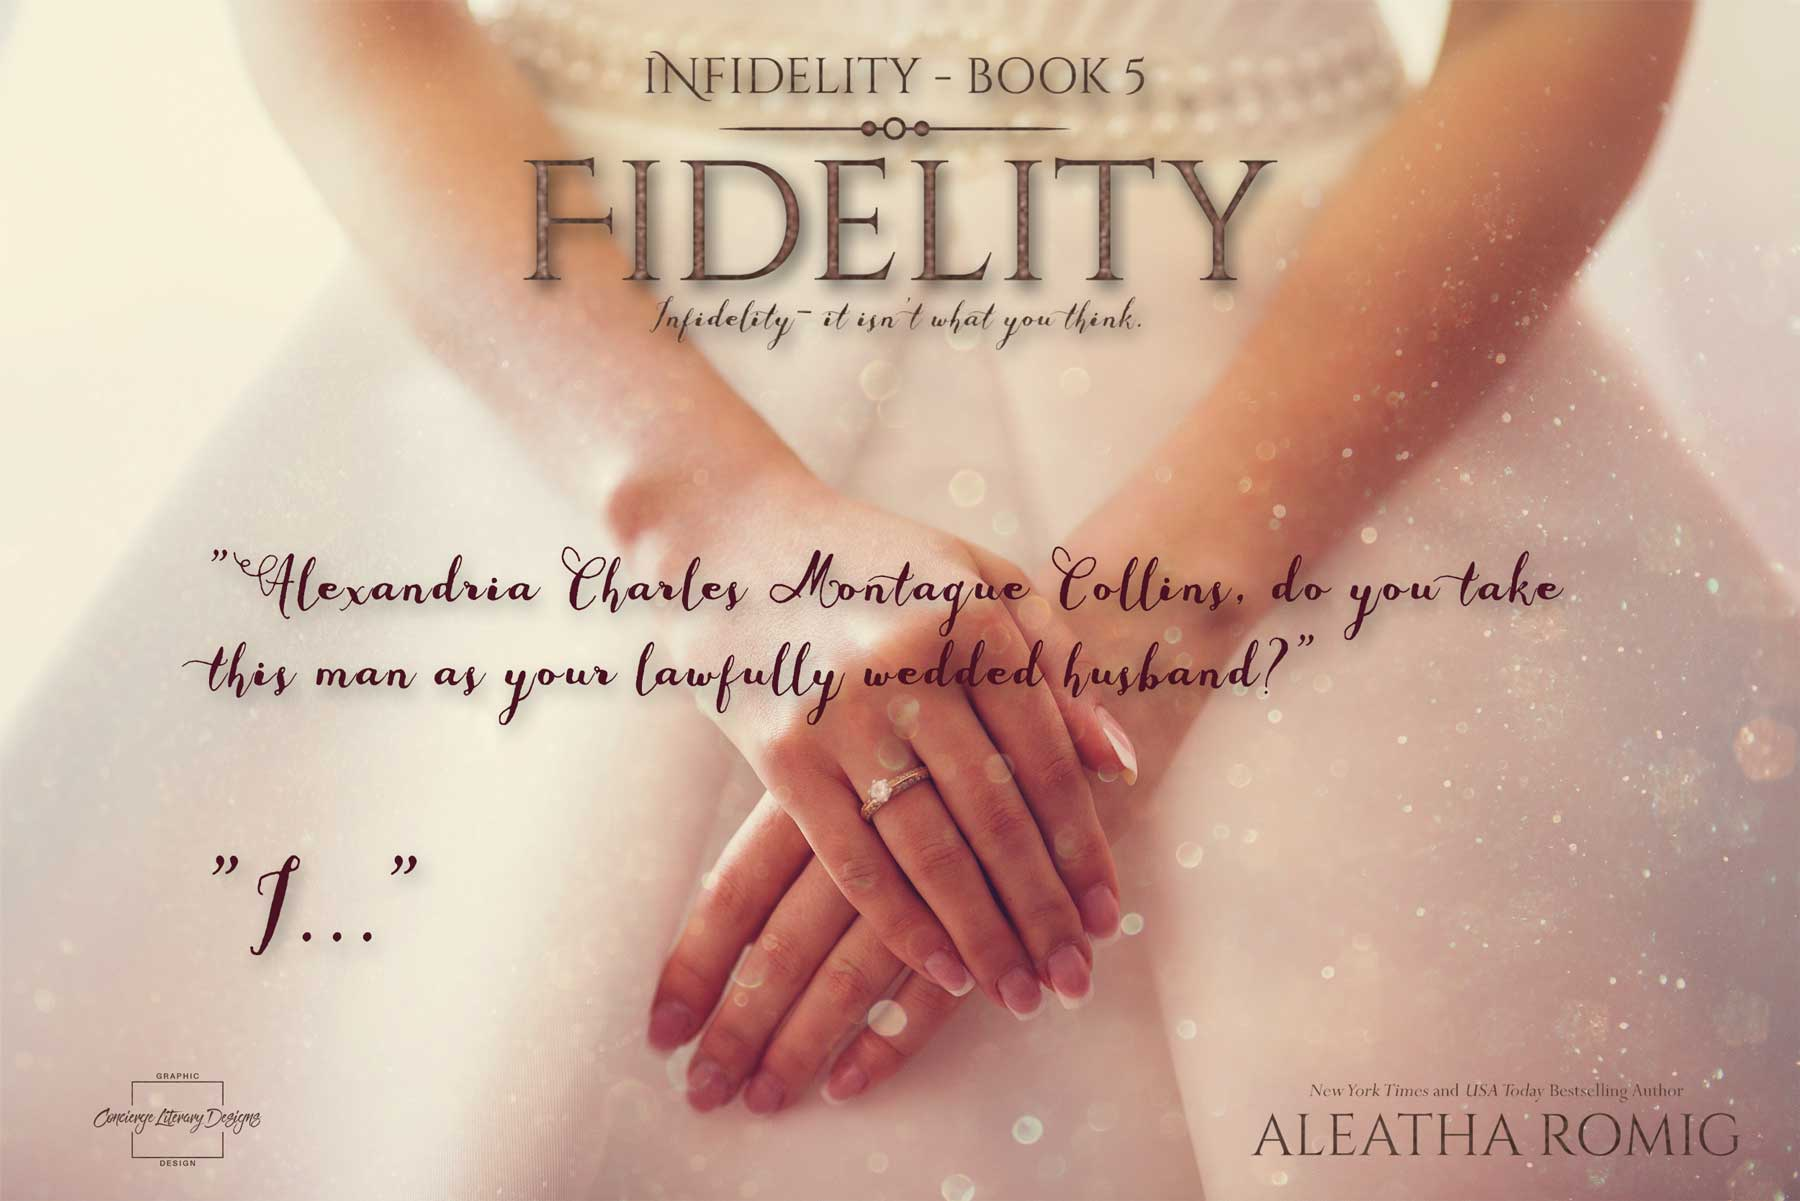 Fidelity by Aleatha Romig-Infidelity Book 5 — White Hot Reads